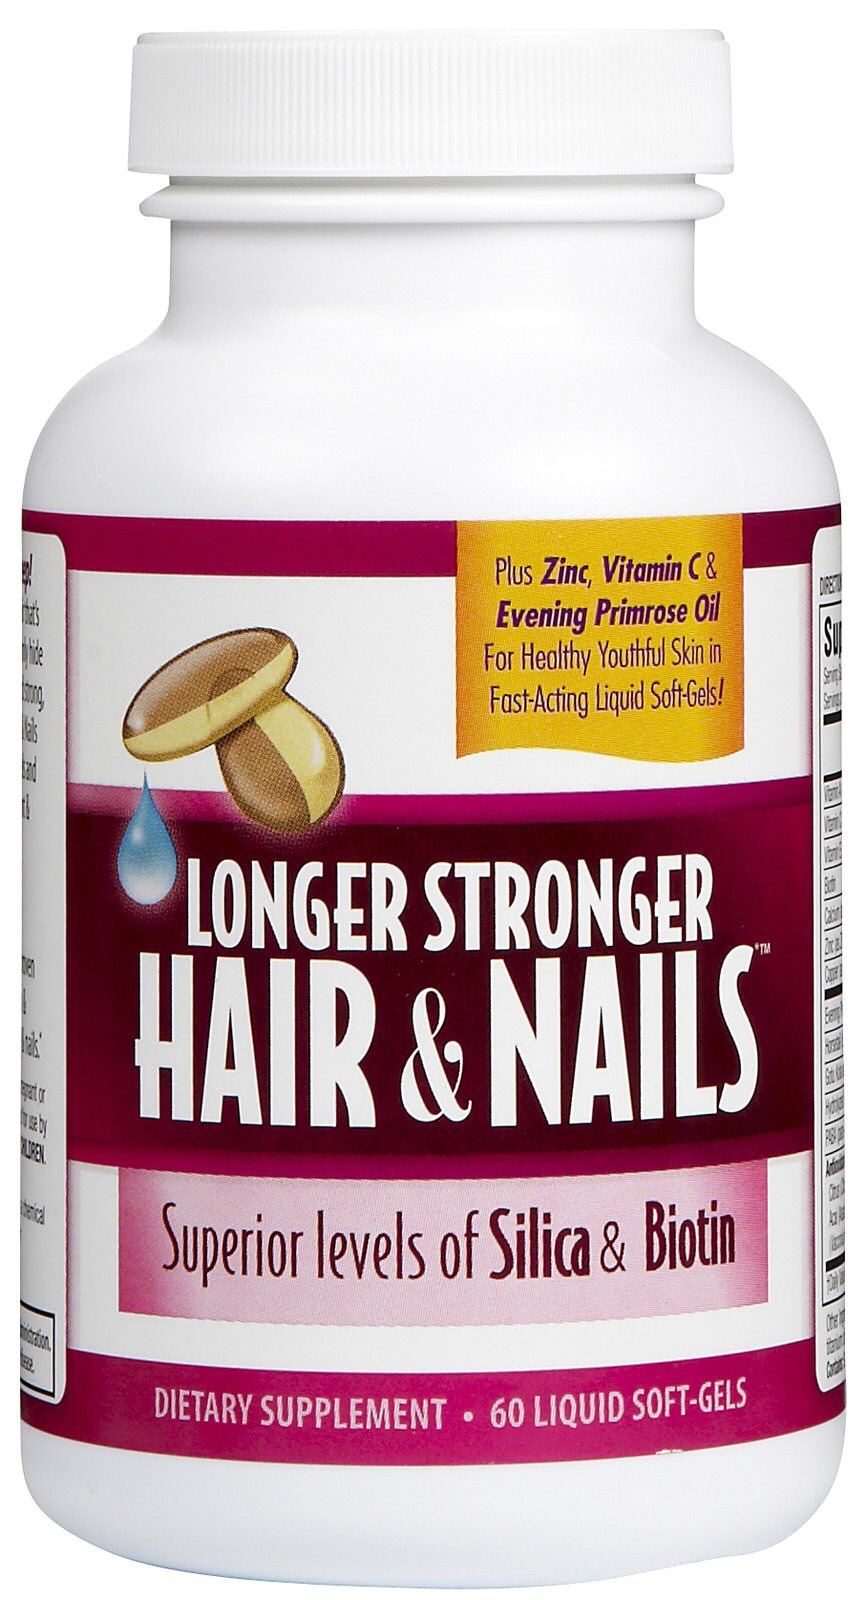 Take hair and nail vitamins to help make sure your getting the right nutrients for your hair